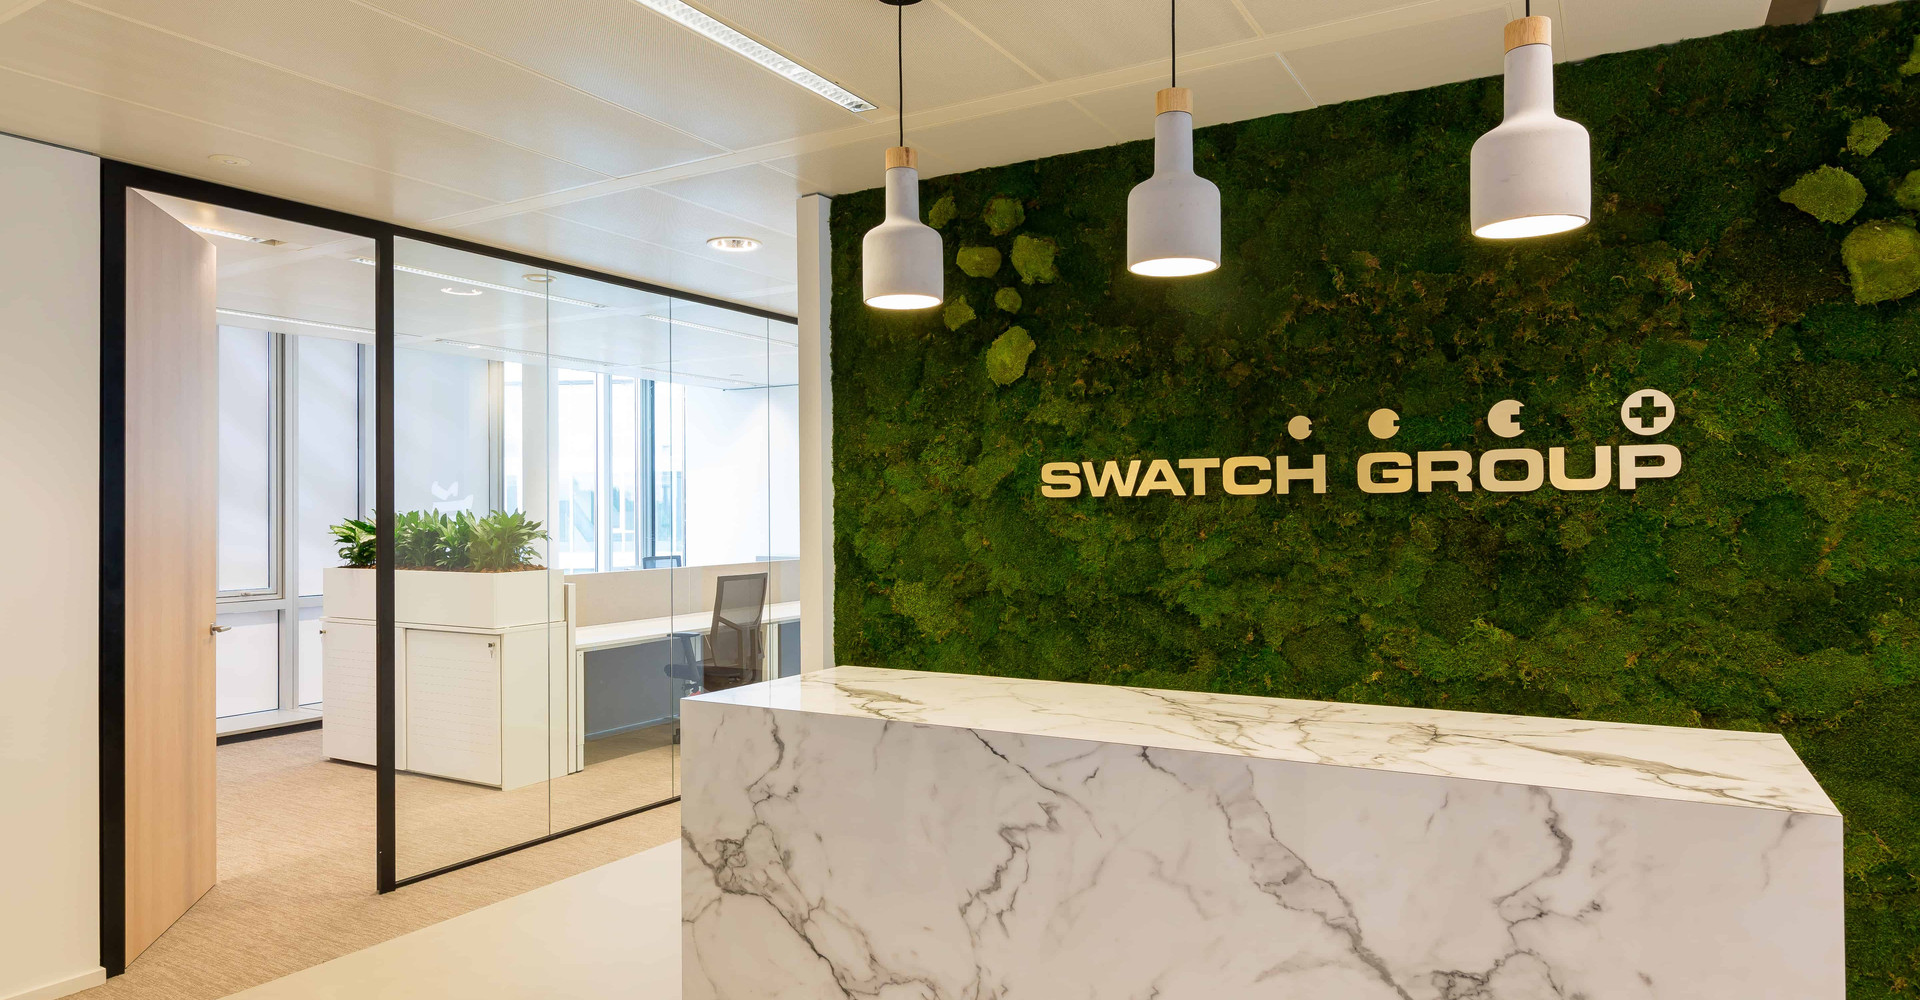 Swatch-Group-2.jpg